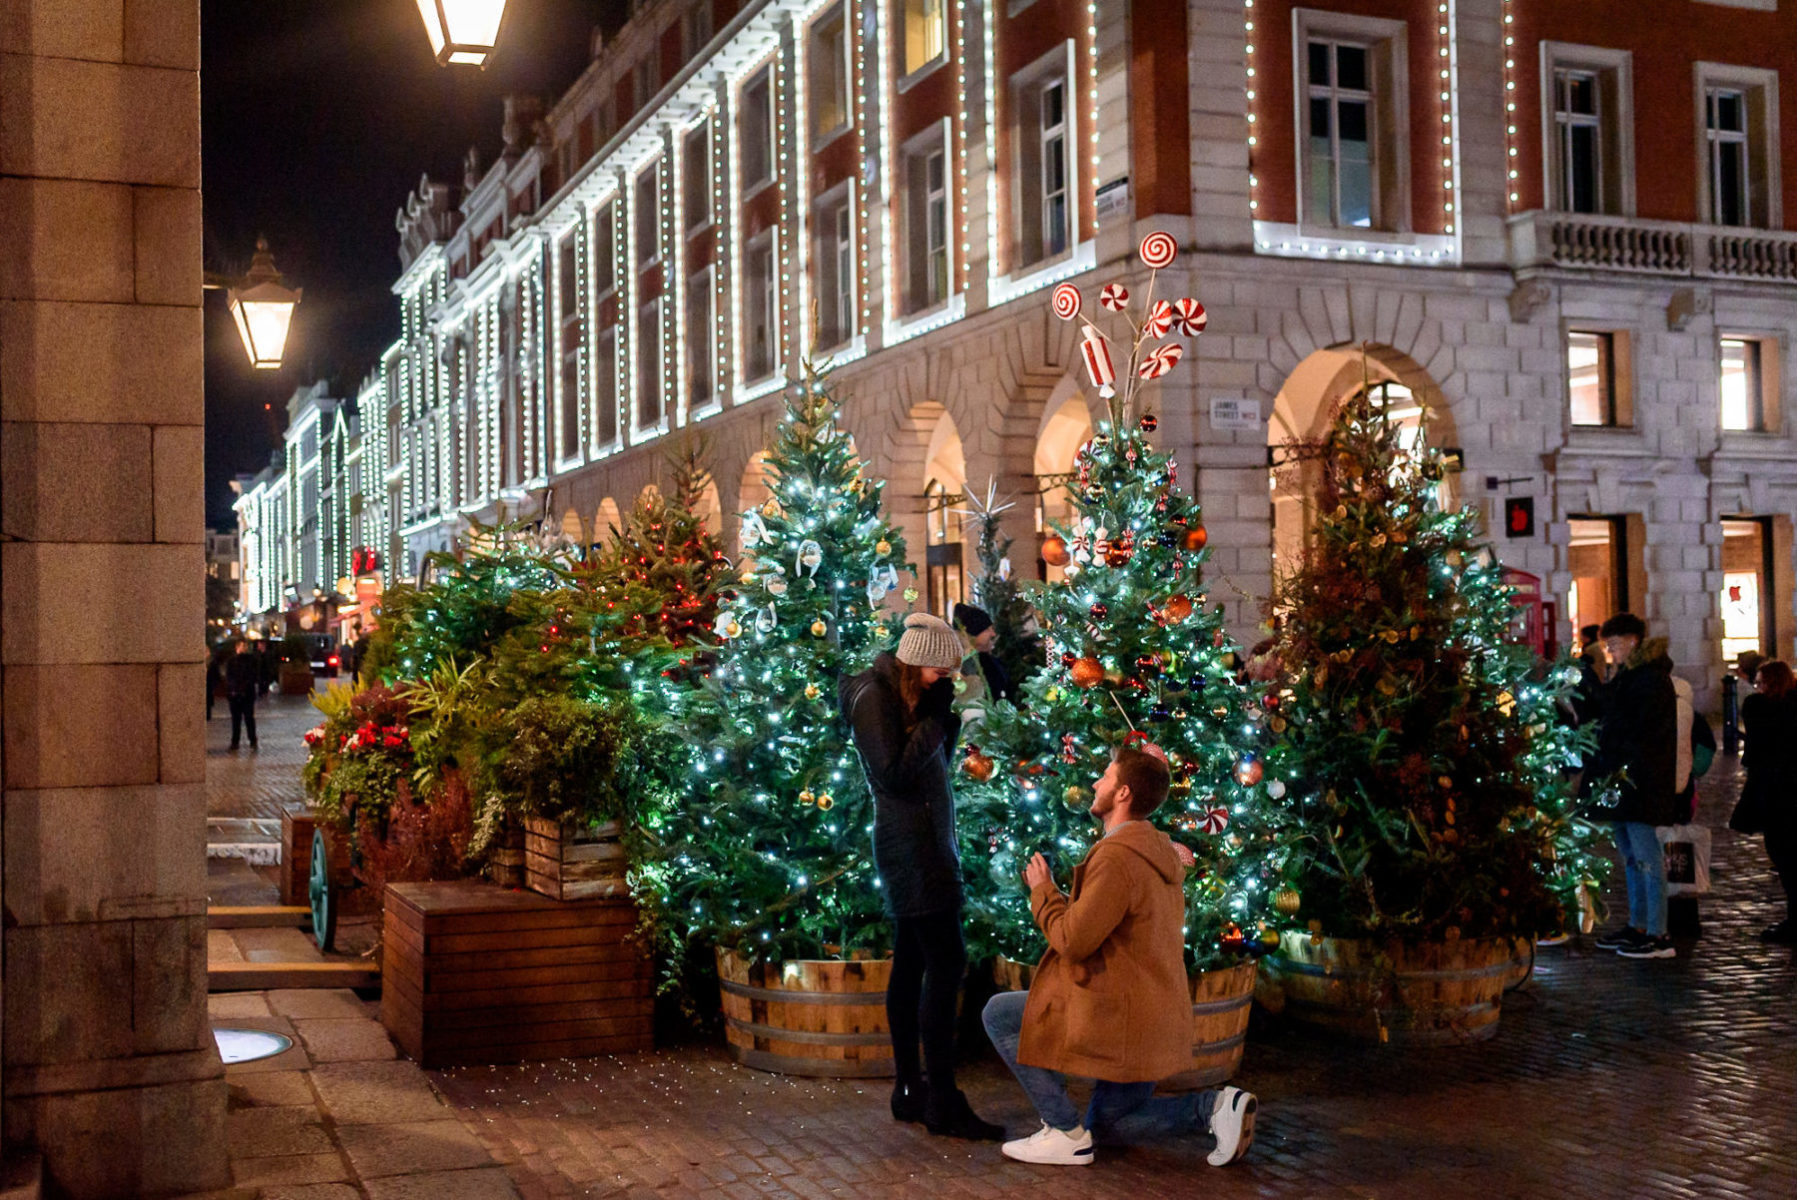 Secret proposal being photographed at Covent Garden in London